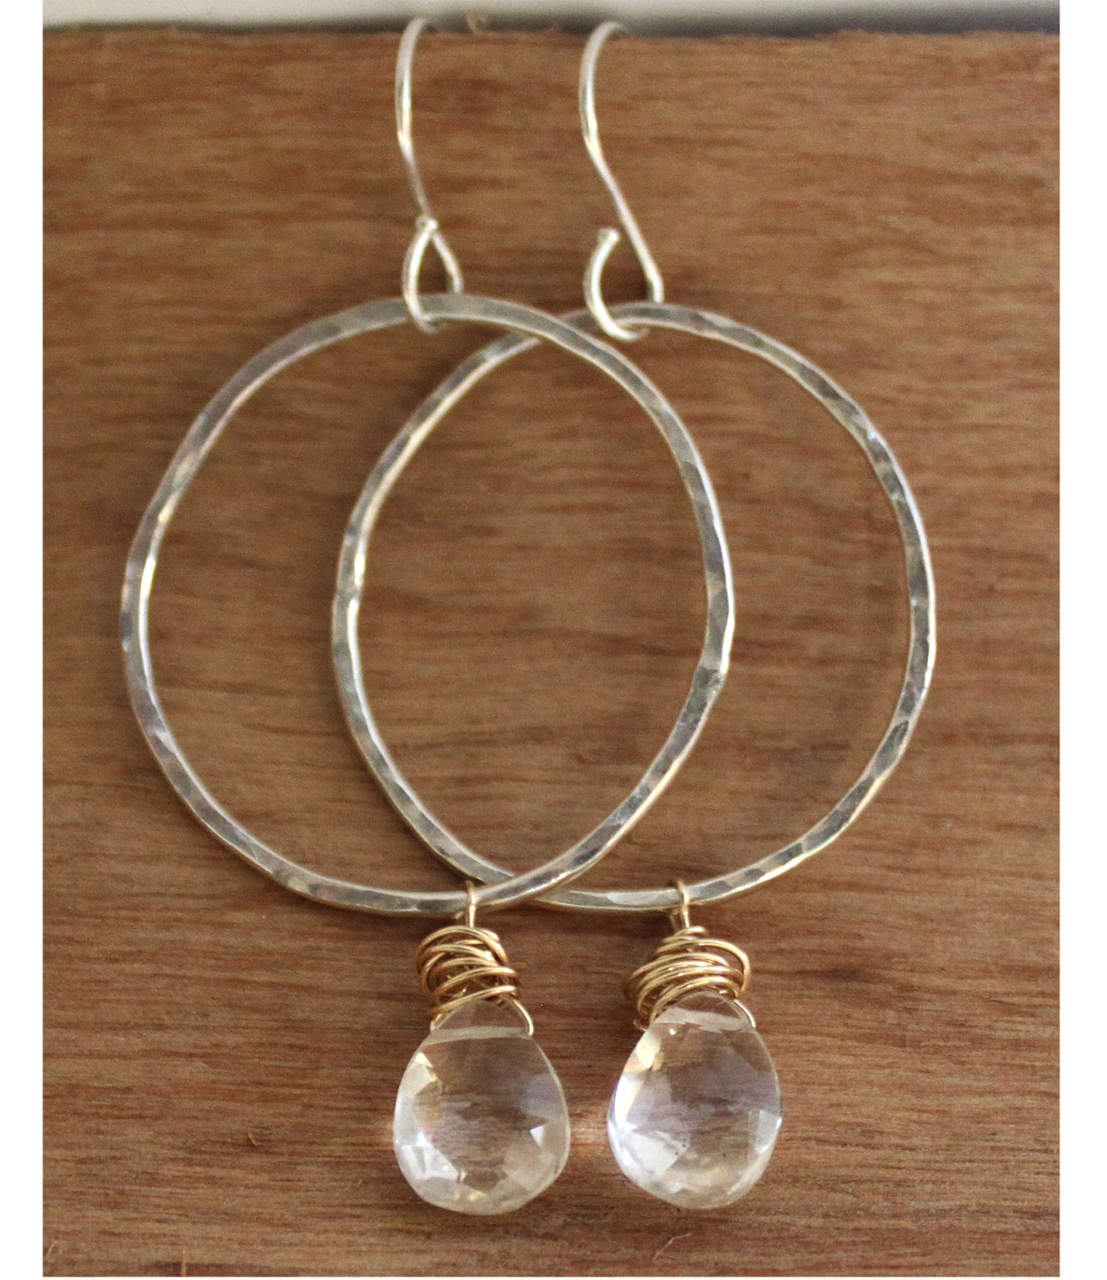 Hoop Crystal Earrings on wood